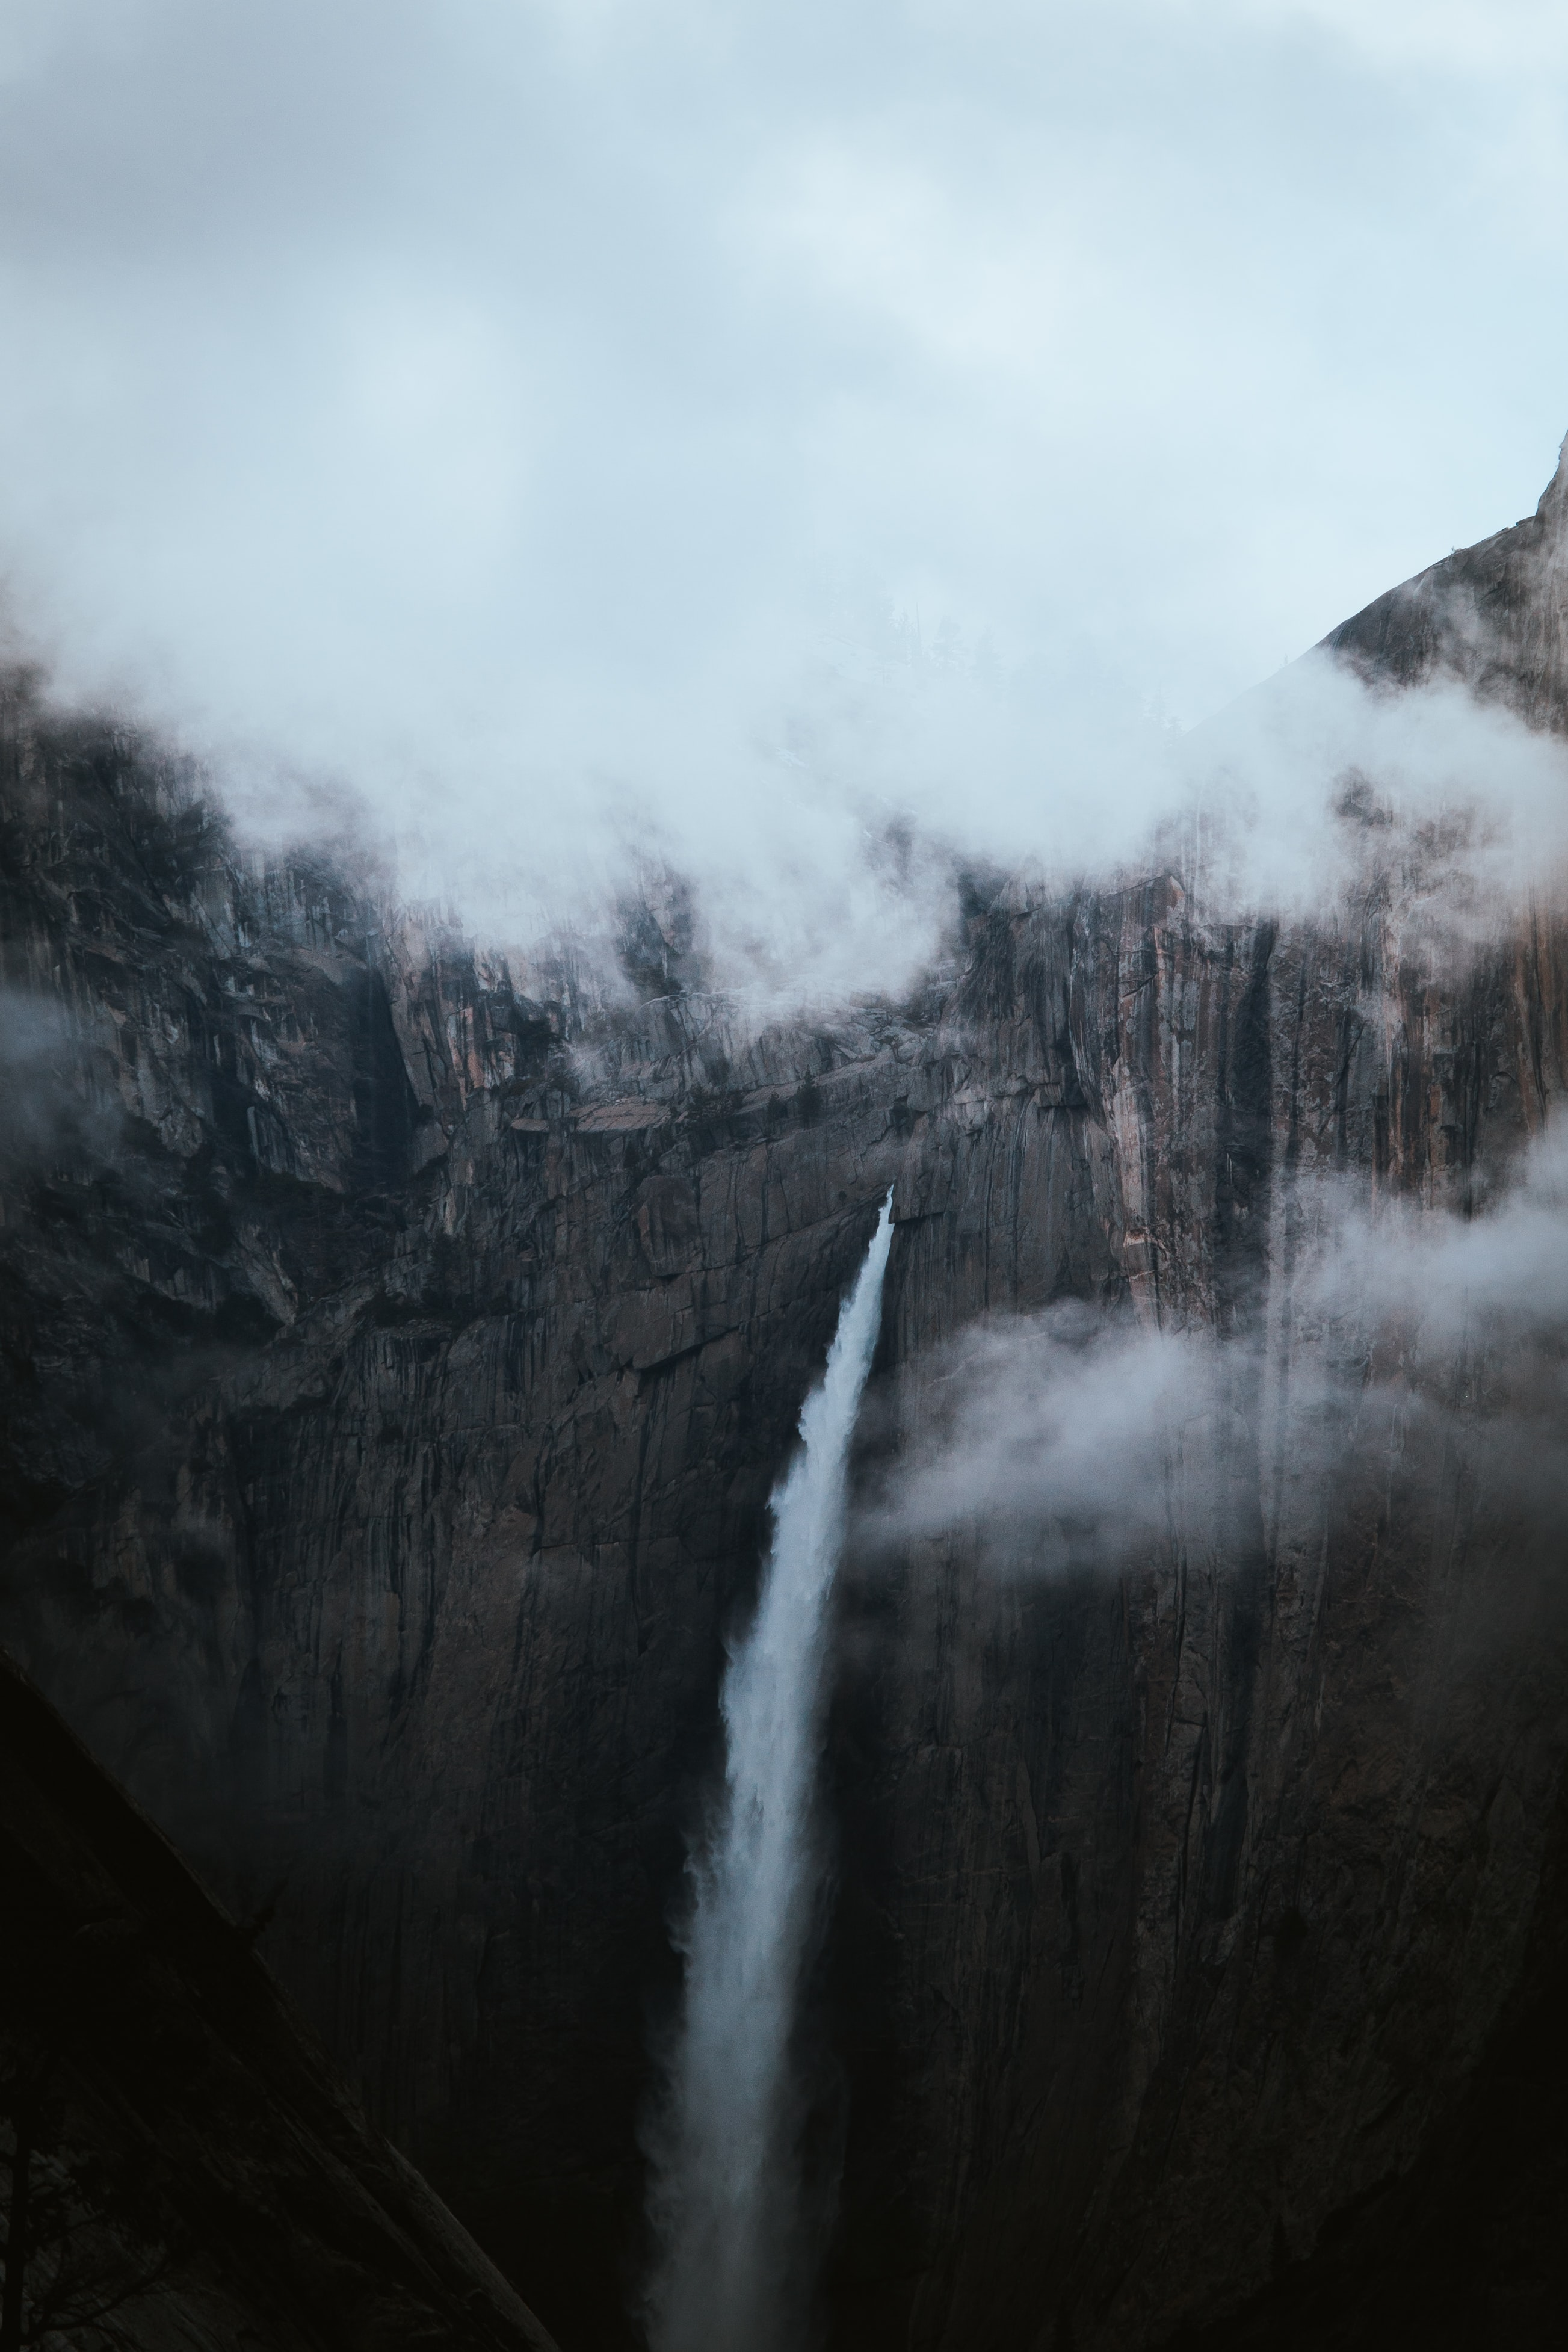 waterfall under white clouds at daytime